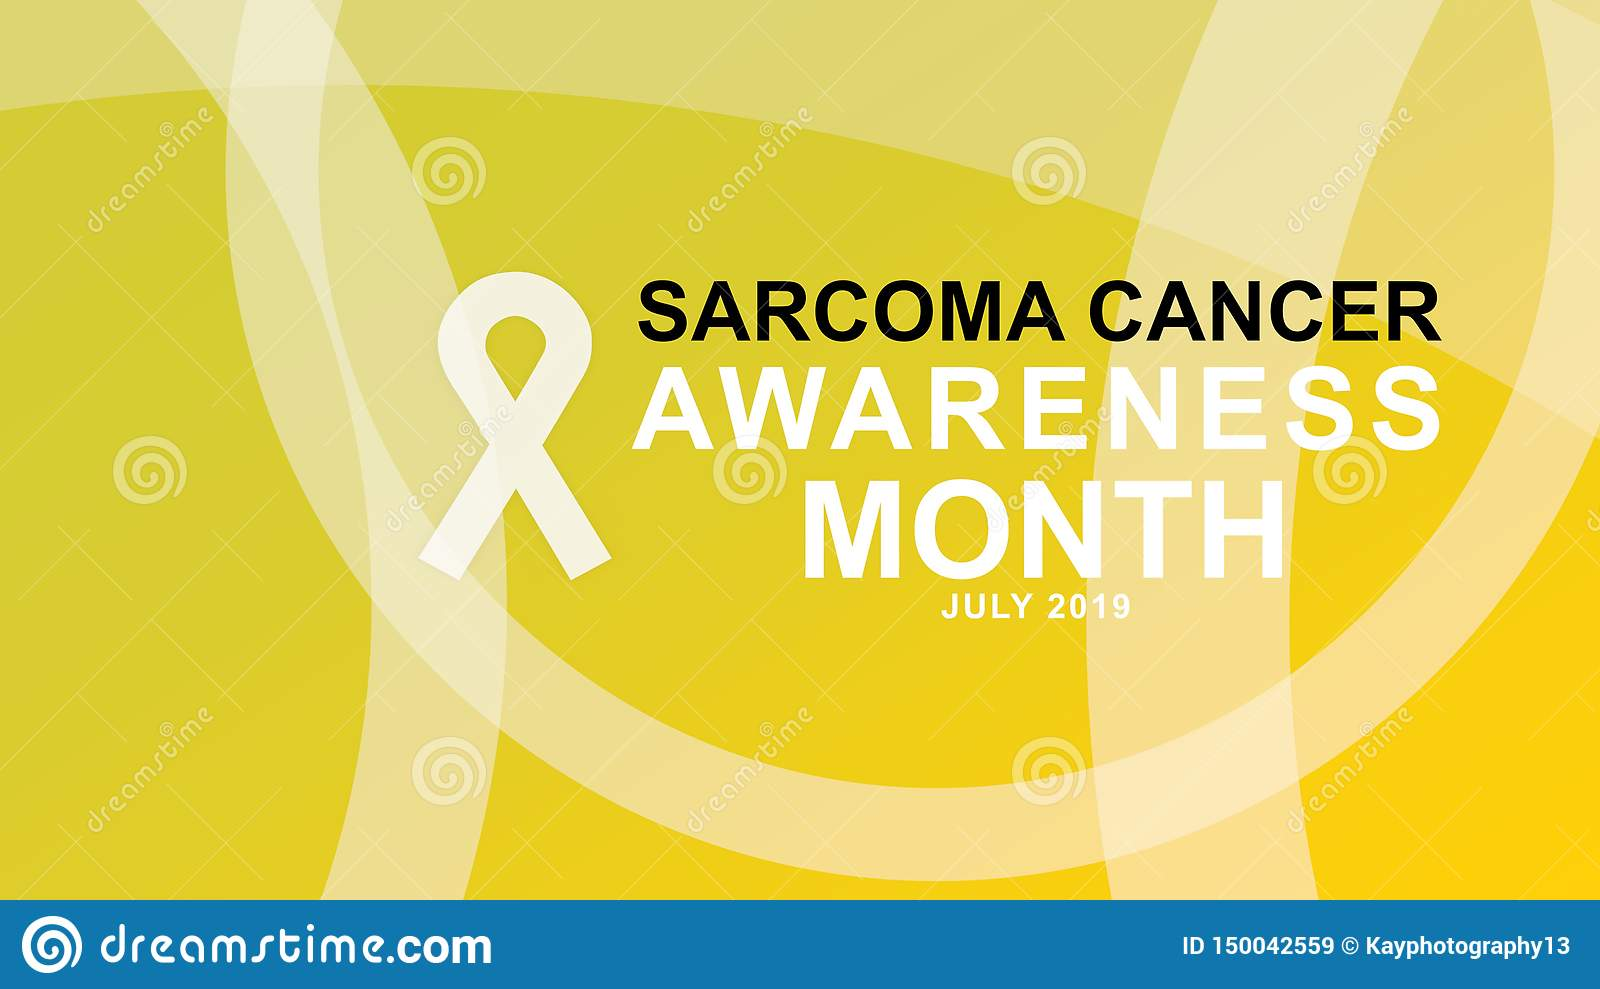 sarcoma cancer awareness week 2019)